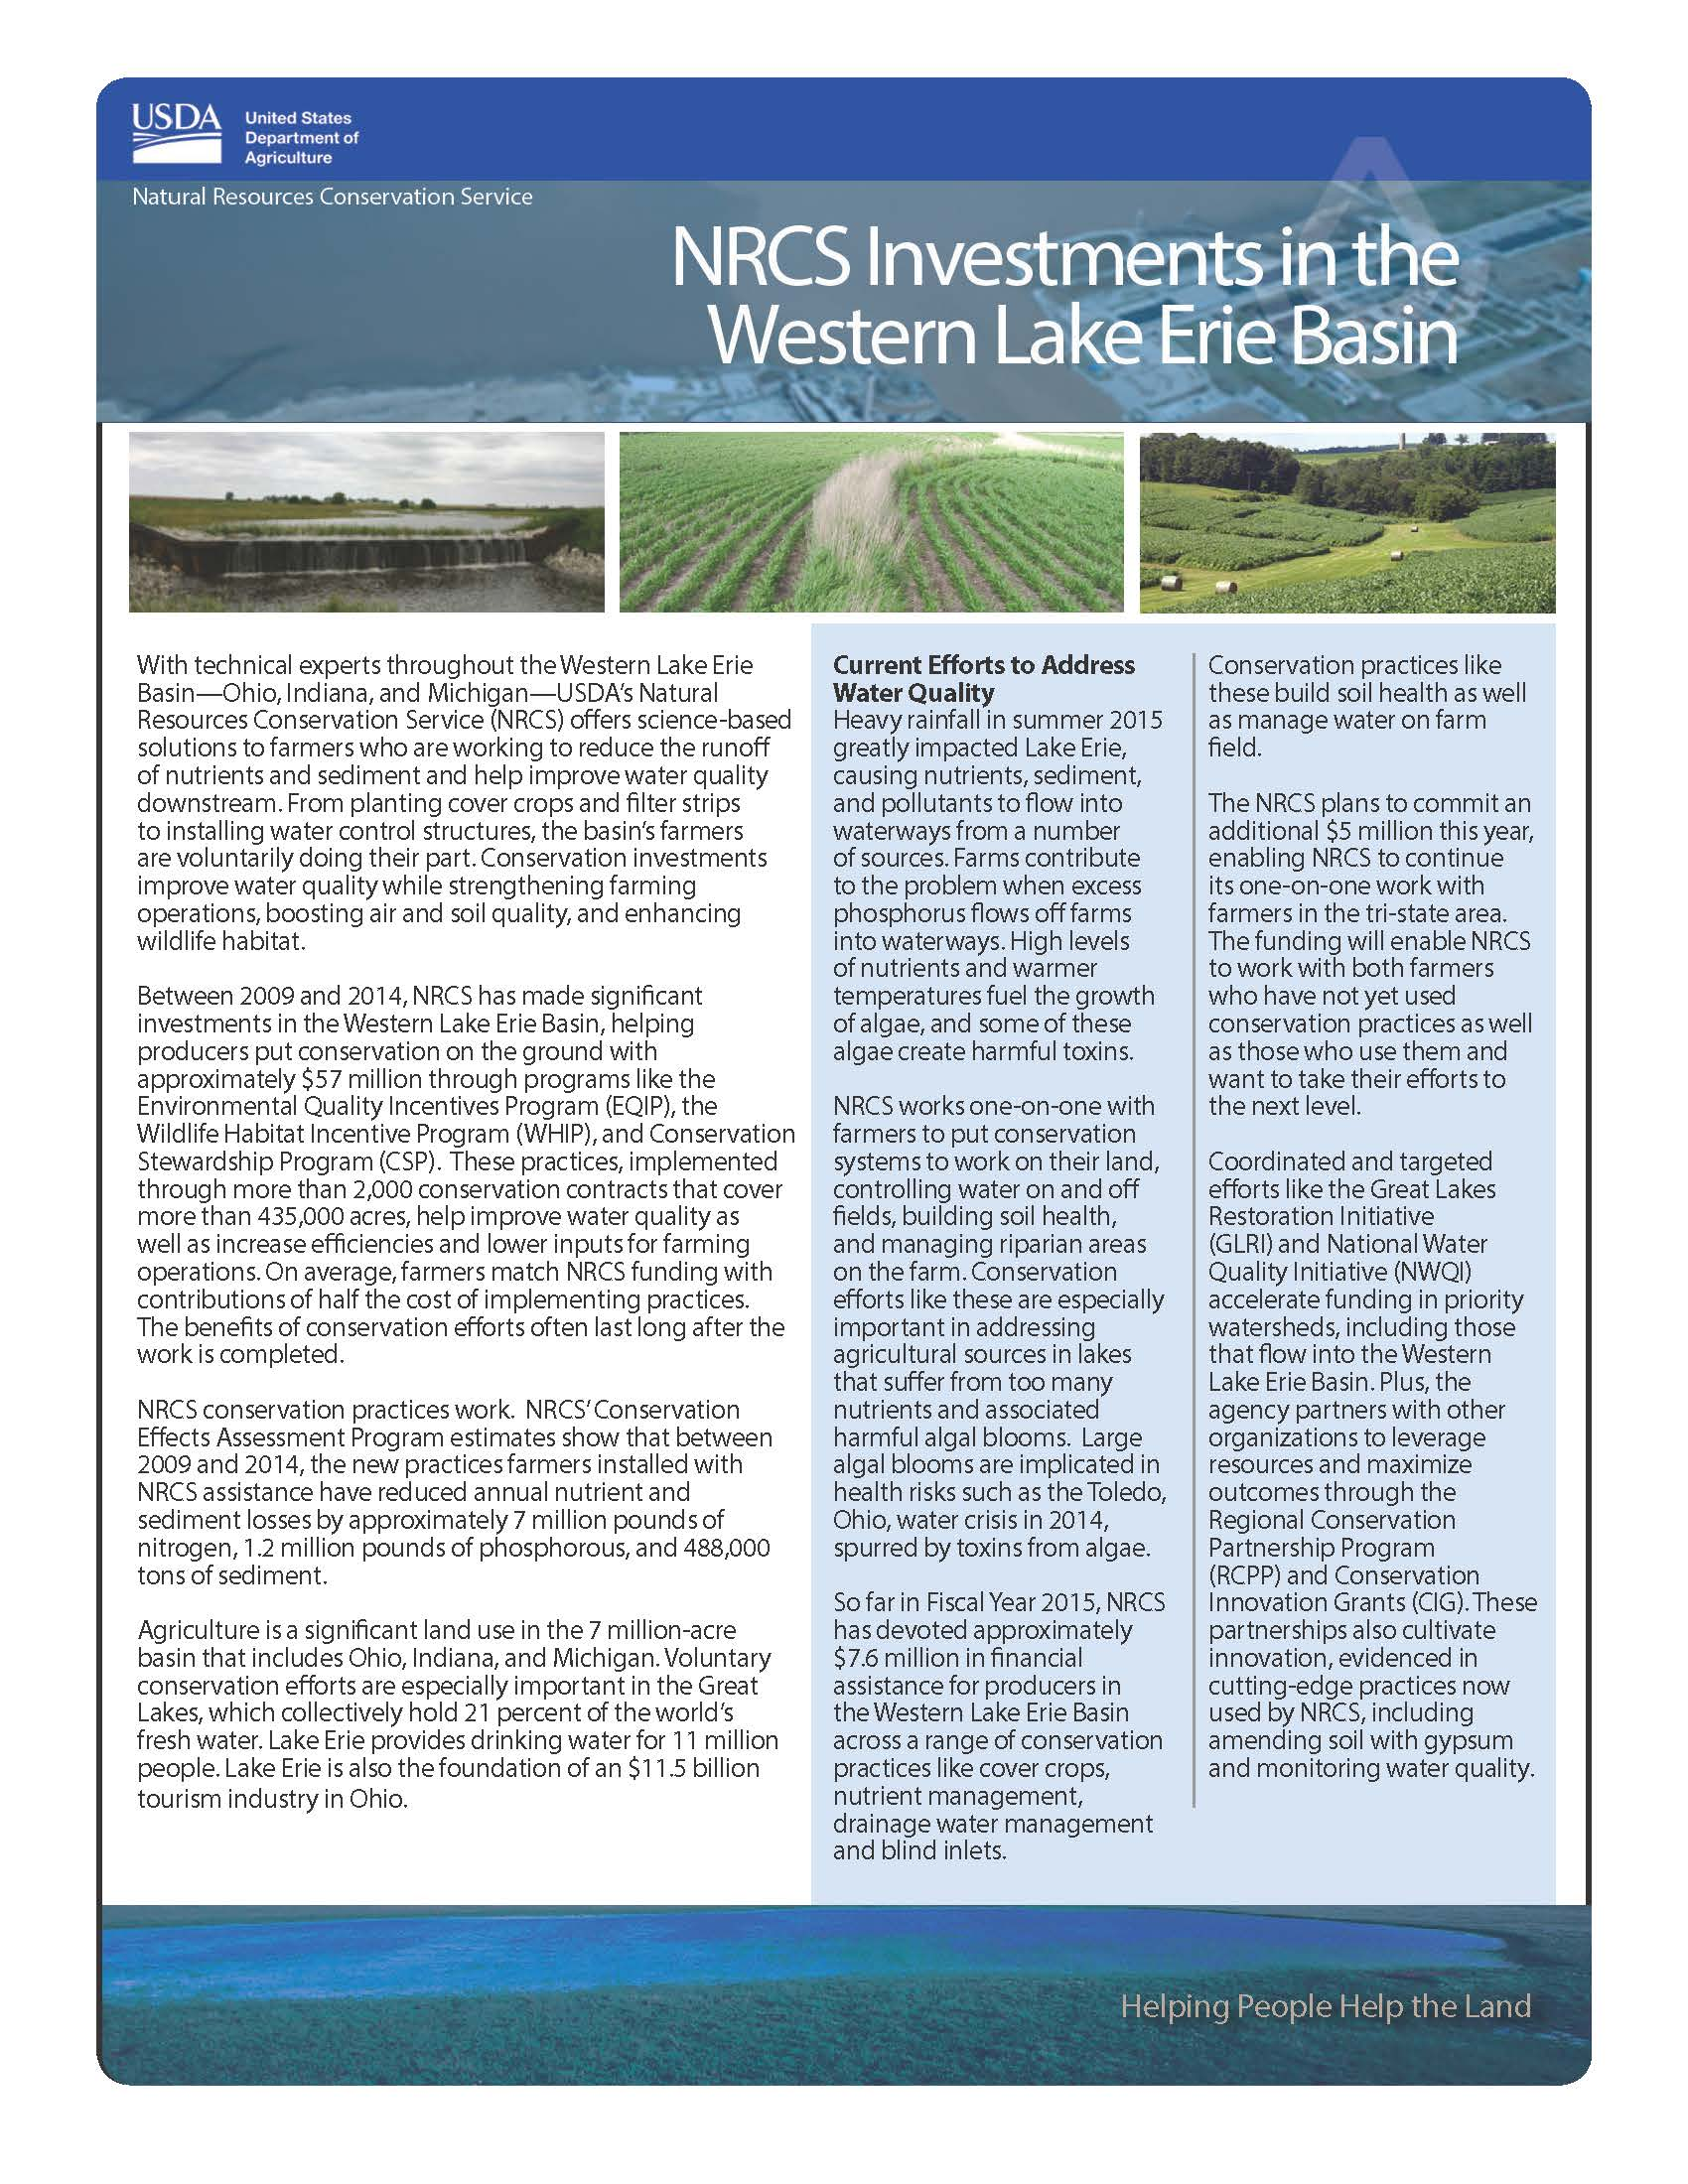 NRCS Investments in the Western Lake Erie Basin